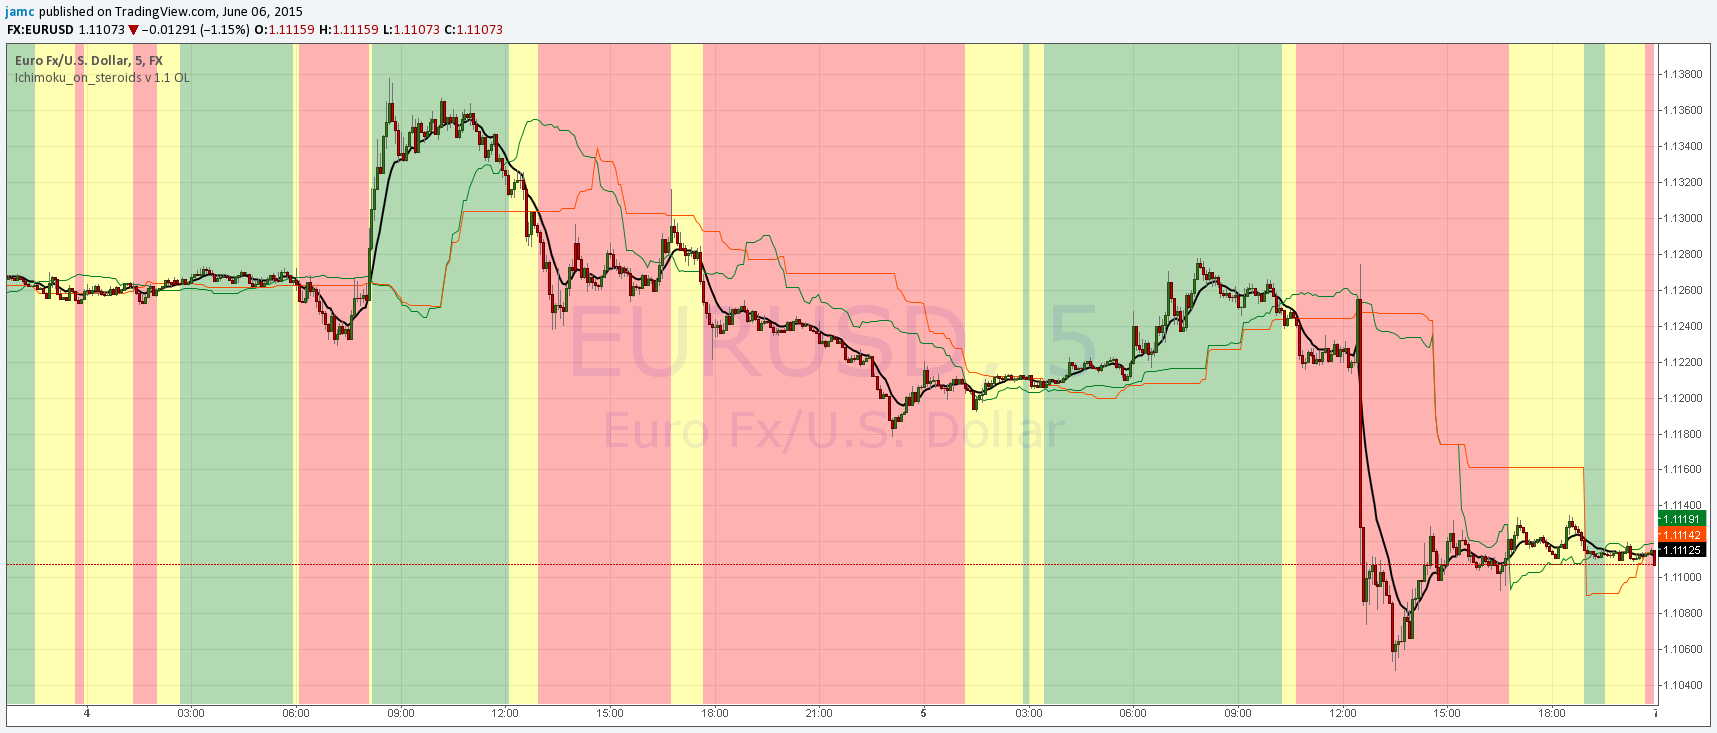 Ichimoku_on_steroids v 1 0 OL — Indicator by jamc — TradingView